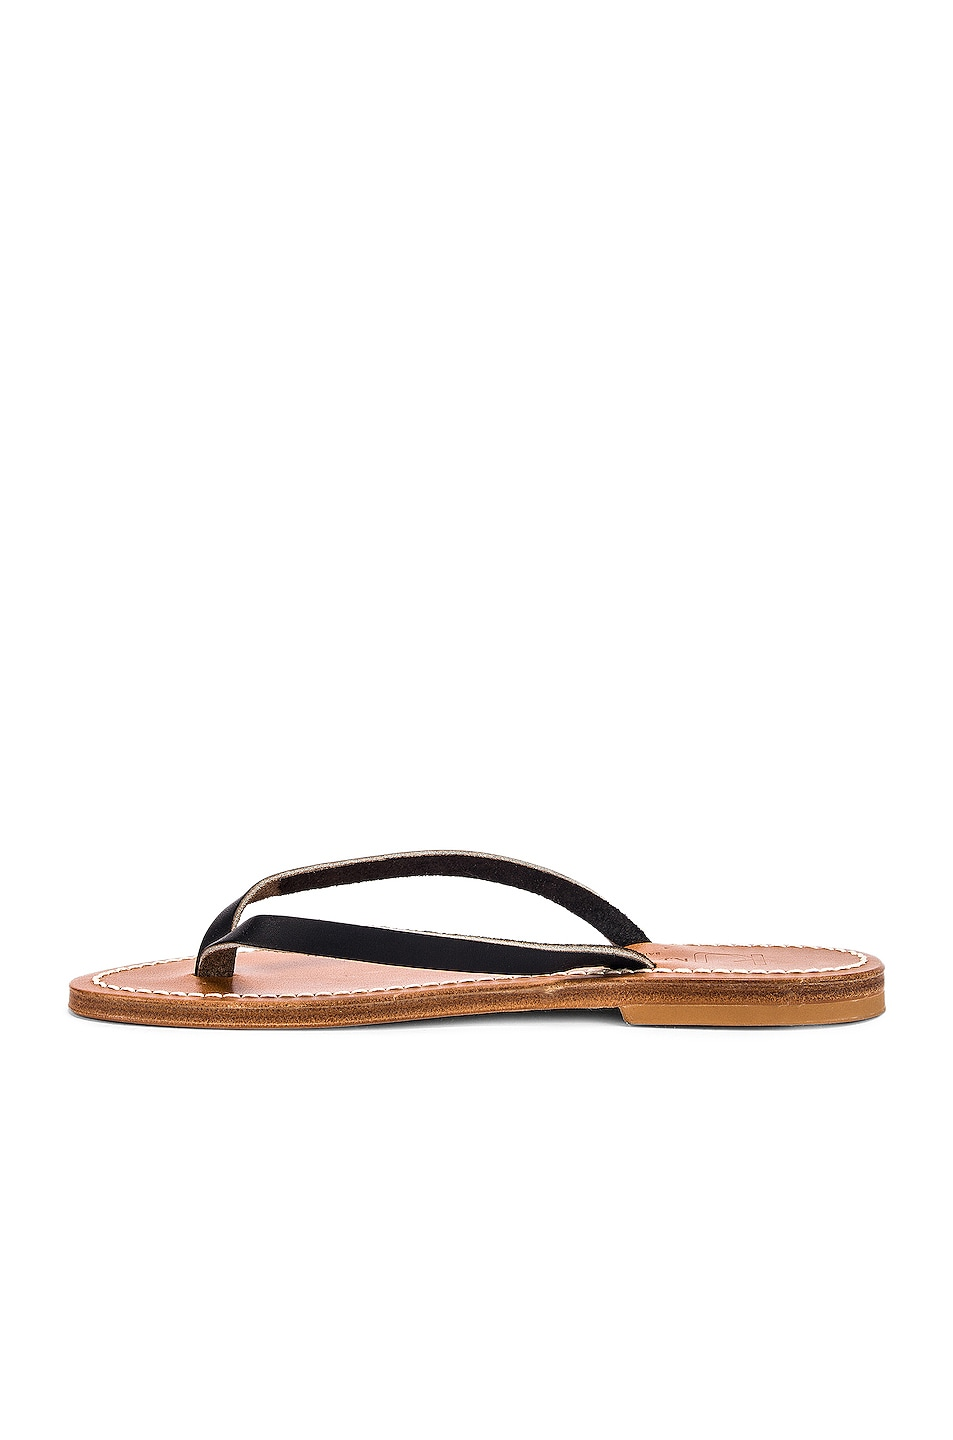 Image 5 of K Jacques Venise Sandal in Pul Noir